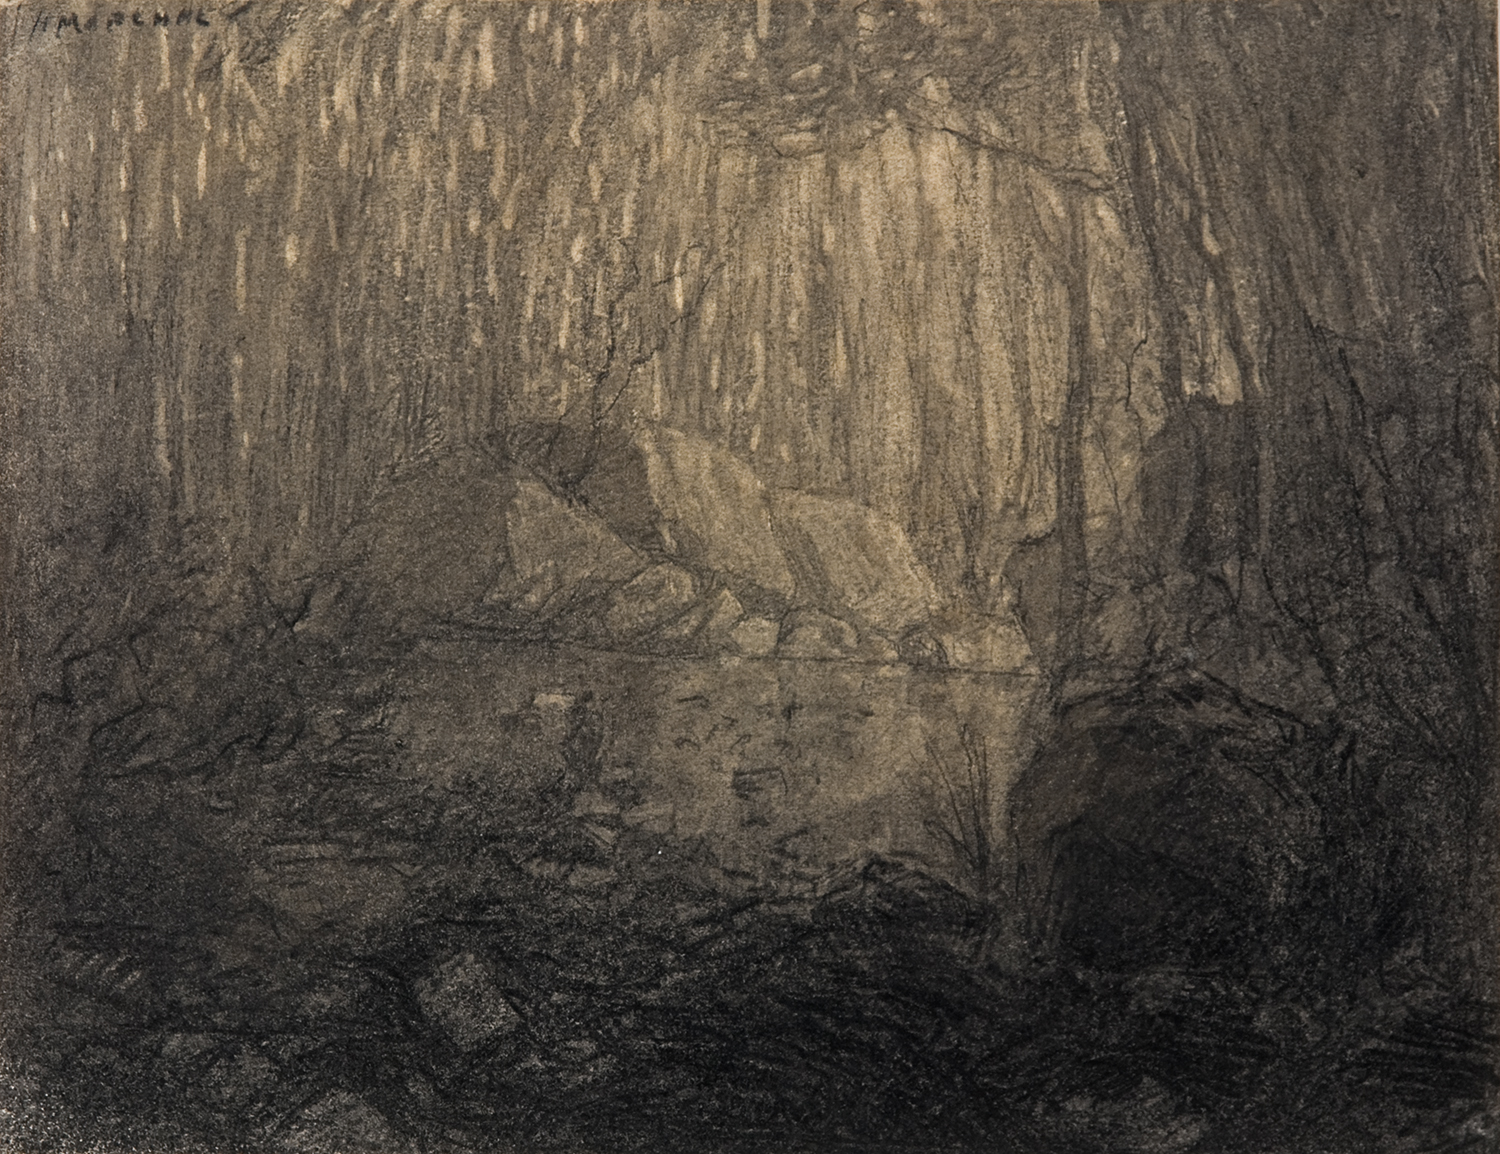 Henri Marchal, French, 1878-1949,  Dark Forest,   c.  1917, pencil, 8 3/4 x 11 1/4""